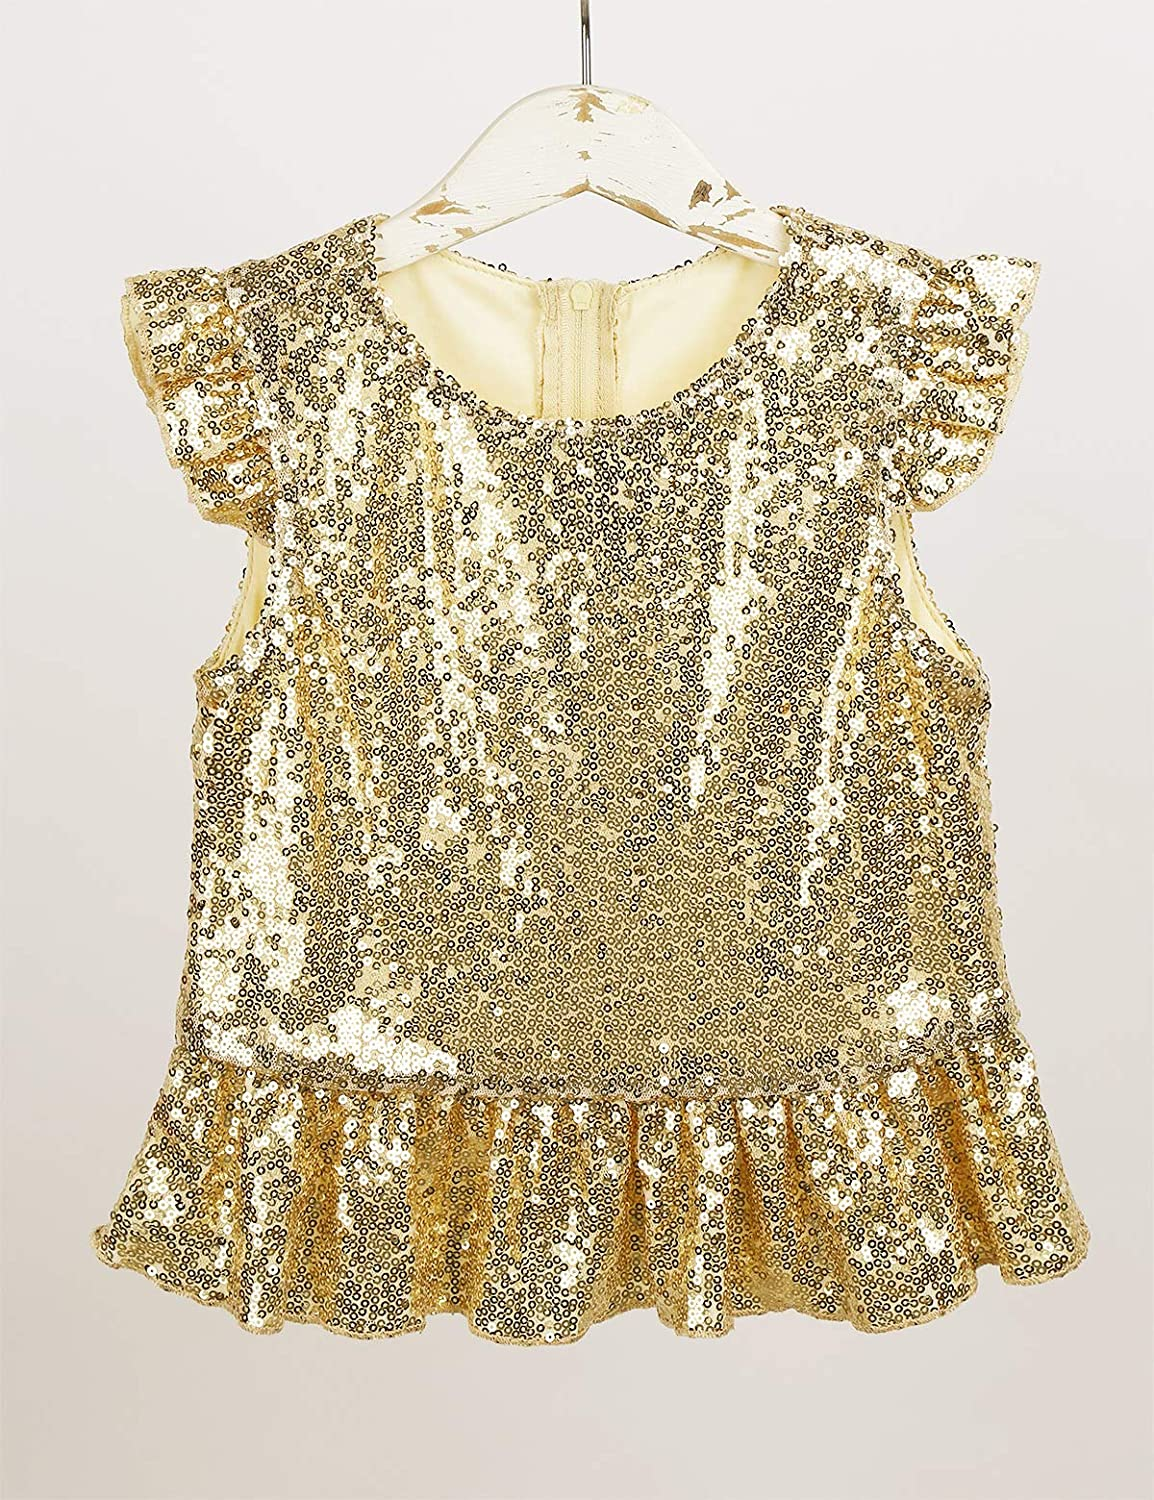 Agoky Girls Sparkly Sequins Camisole Tank Top Stage Performance Mermaid Tee Shirts Dancewear Costume